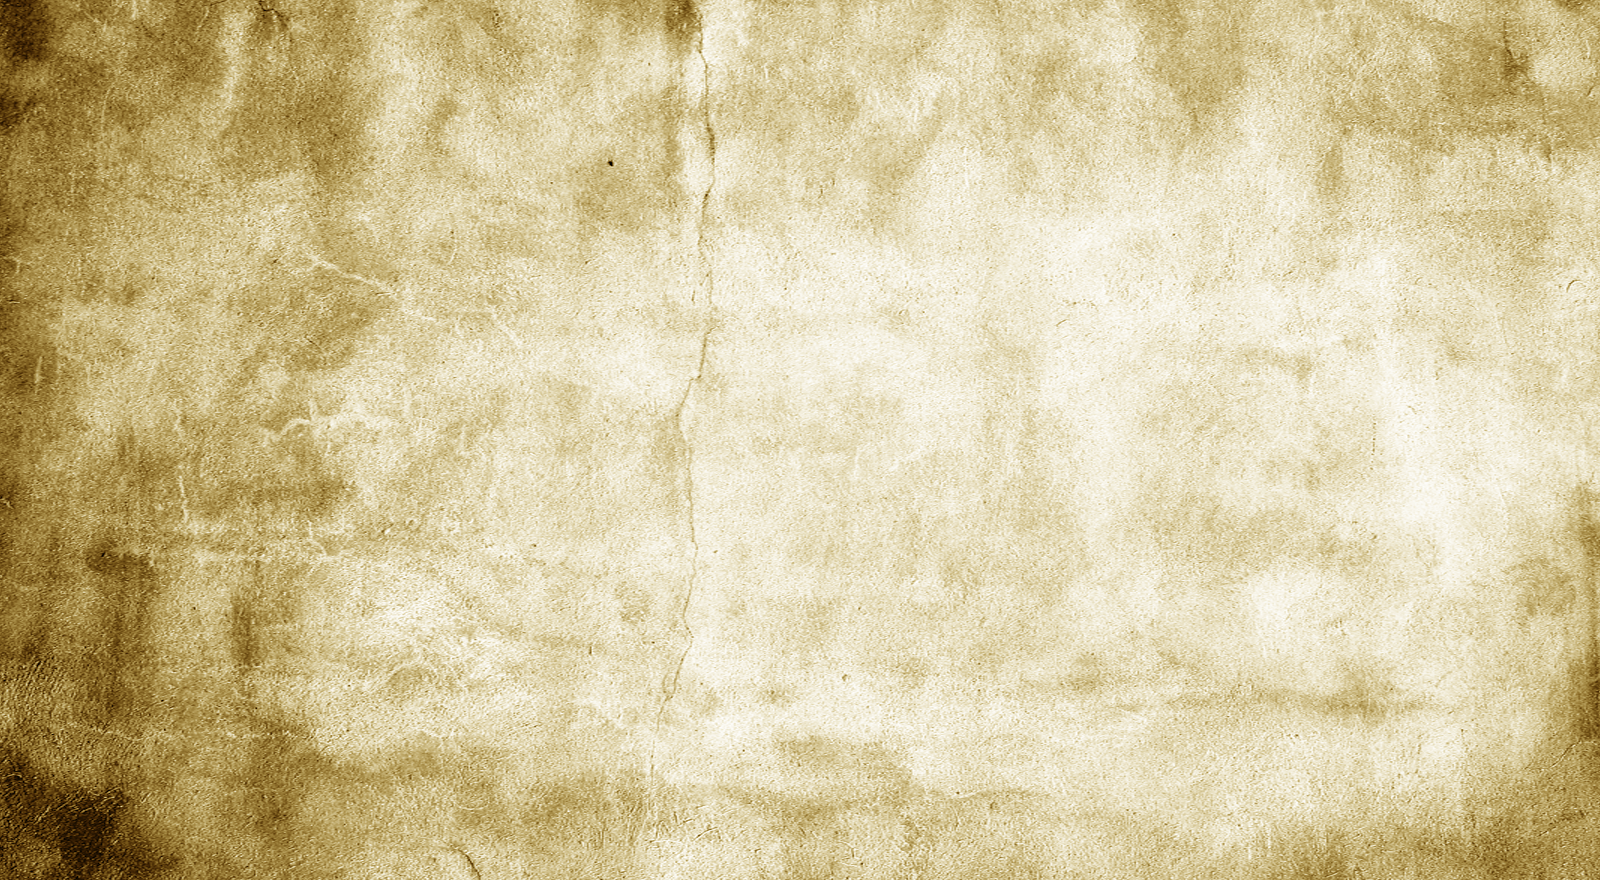 Background Texture Powerpoint Backgrounds For Free